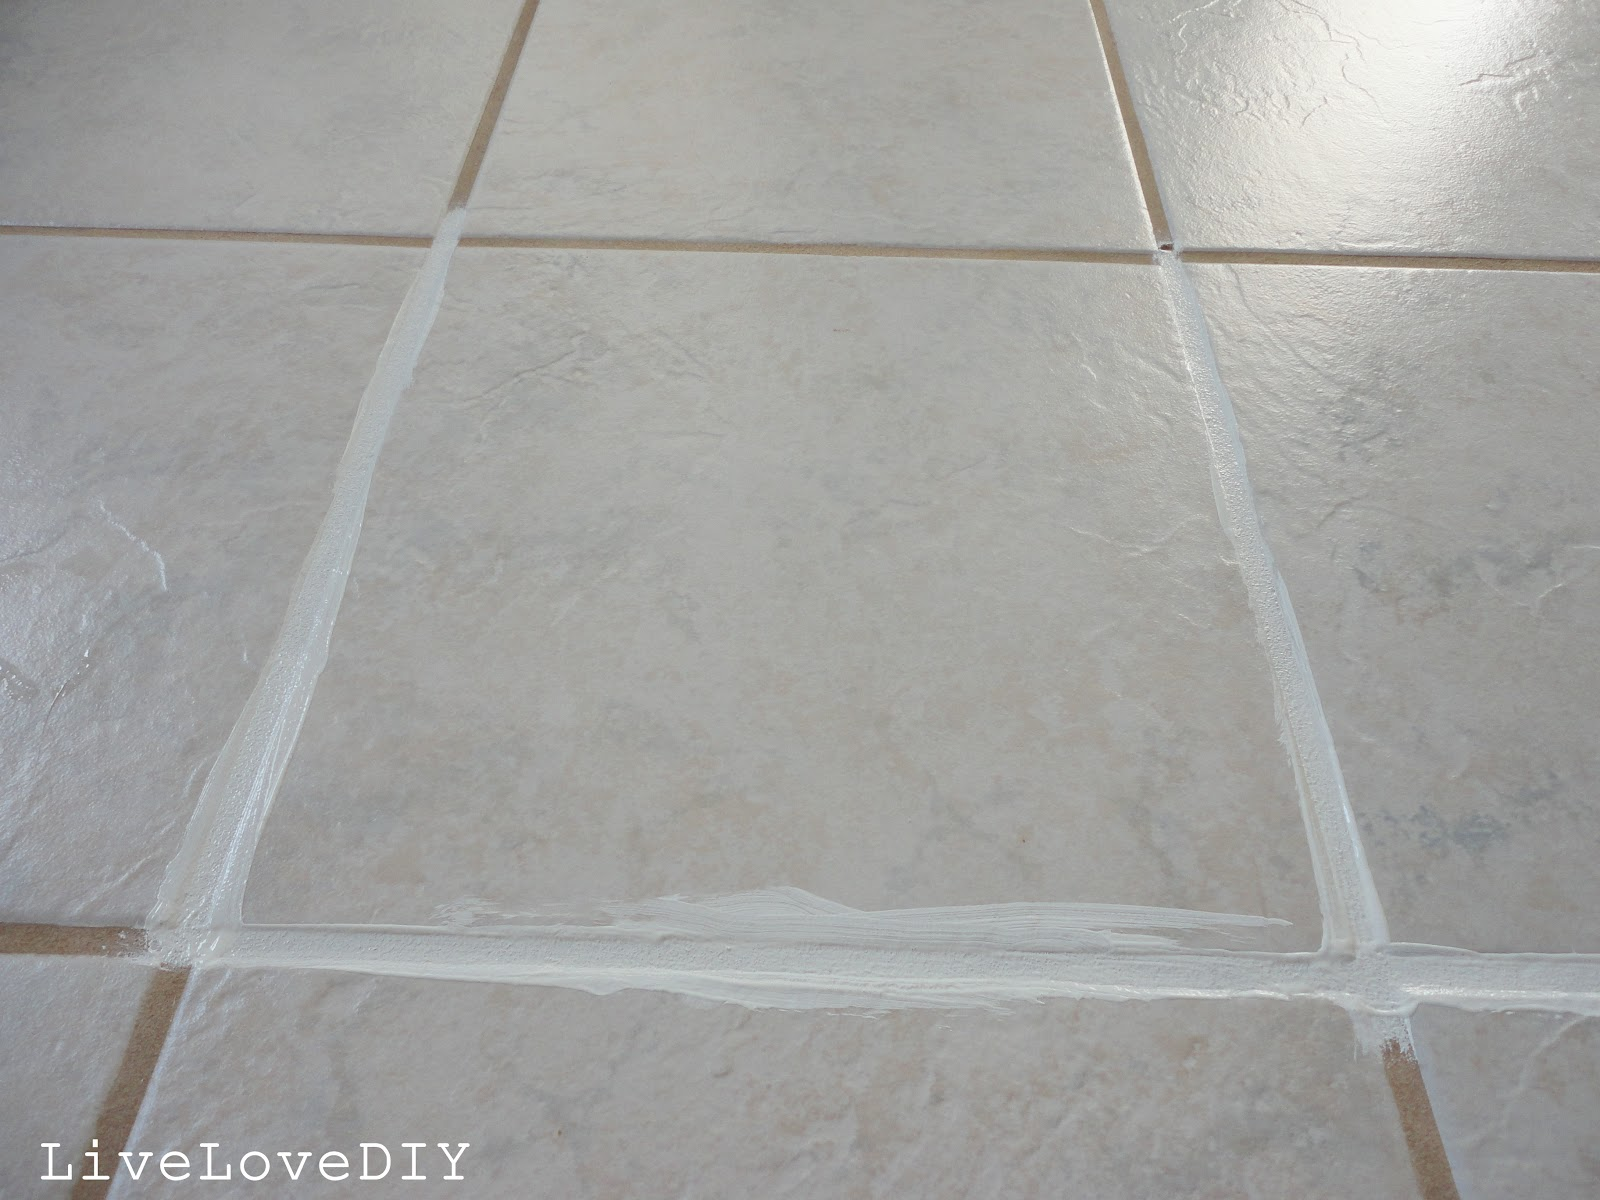 Livelovediy how to restore dirty tile grout livelovediy dailygadgetfo Gallery